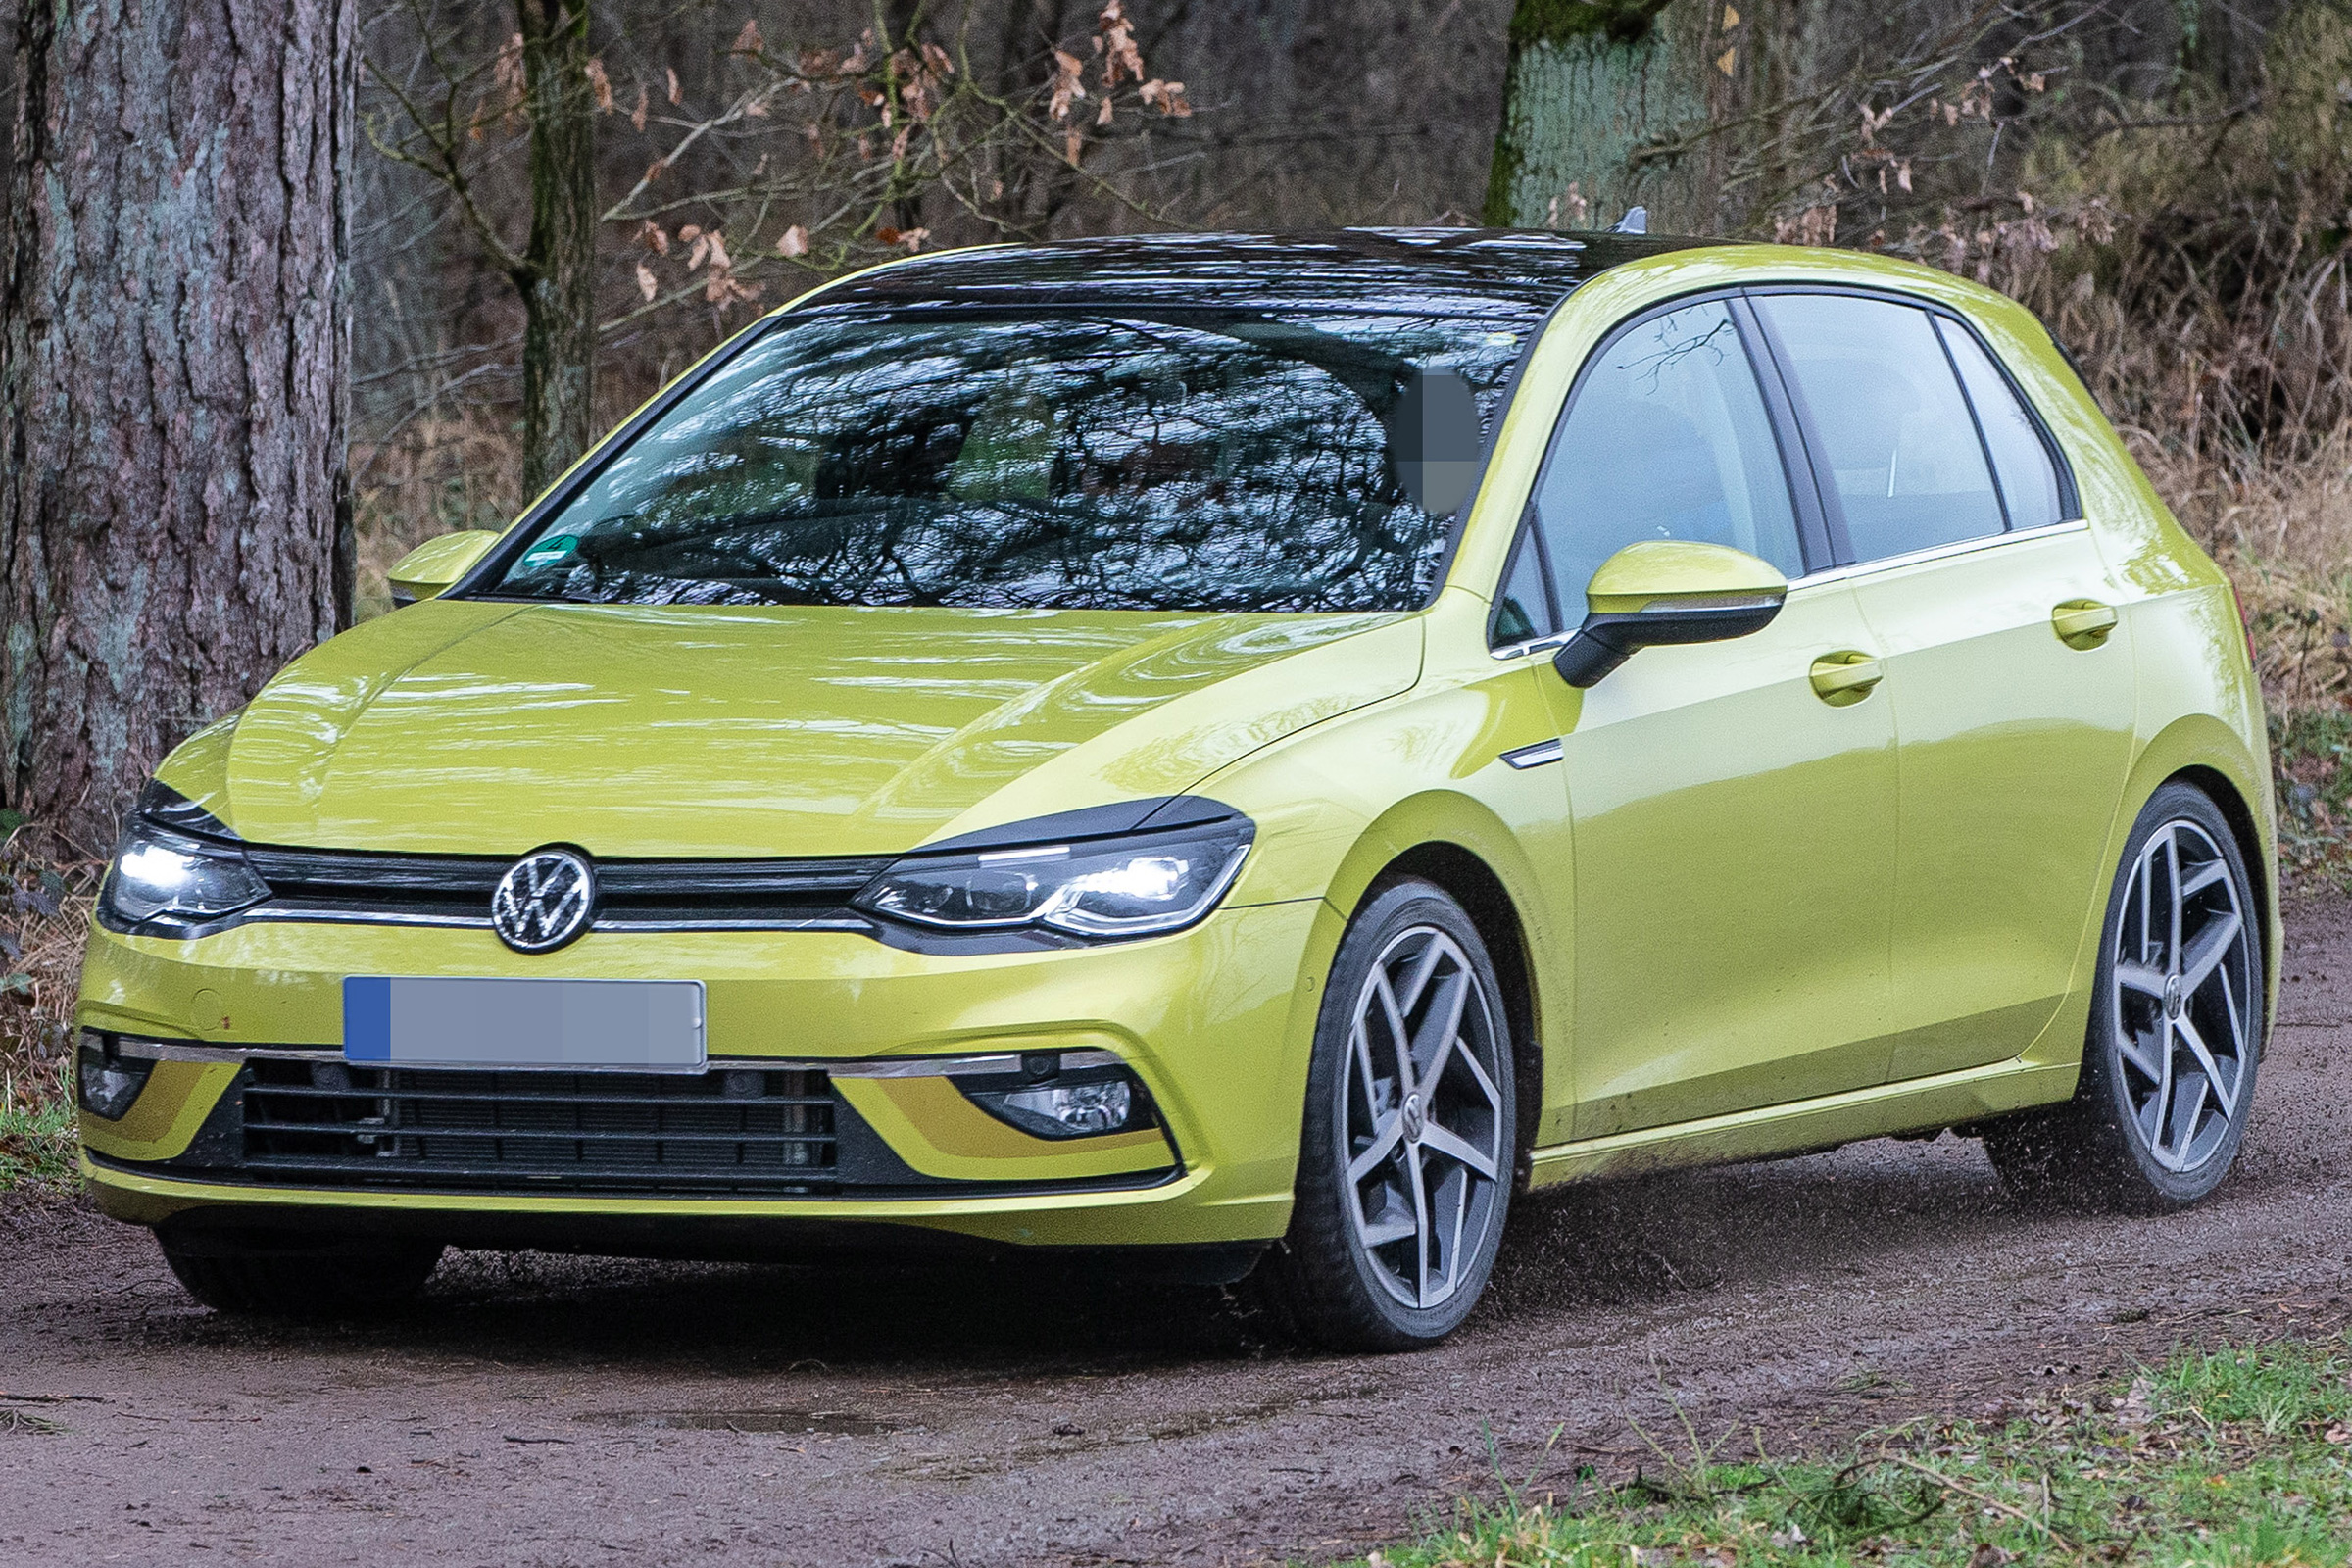 98 All New 2020 Volkswagen Golf GTD Release Date